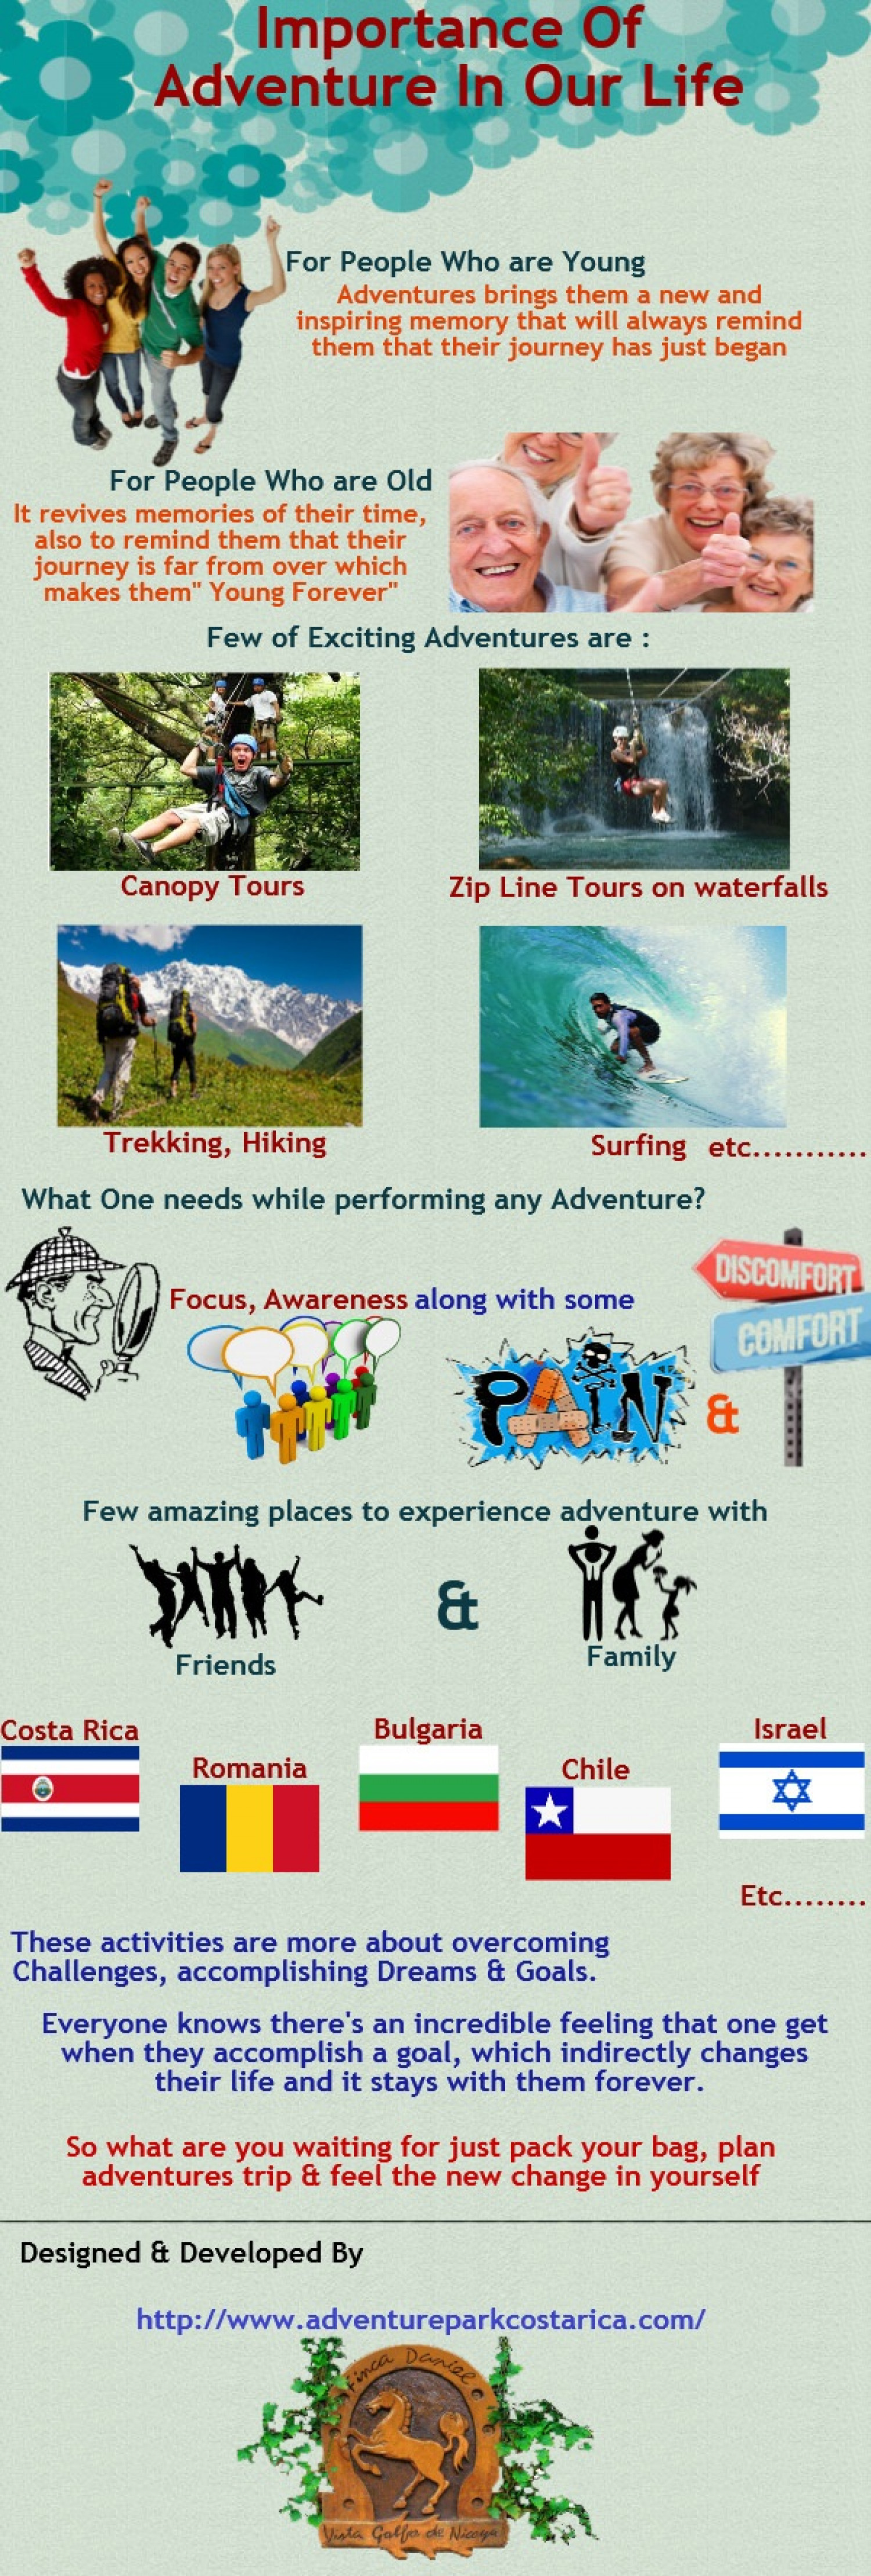 Importance of Adventure in Our Life Infographic